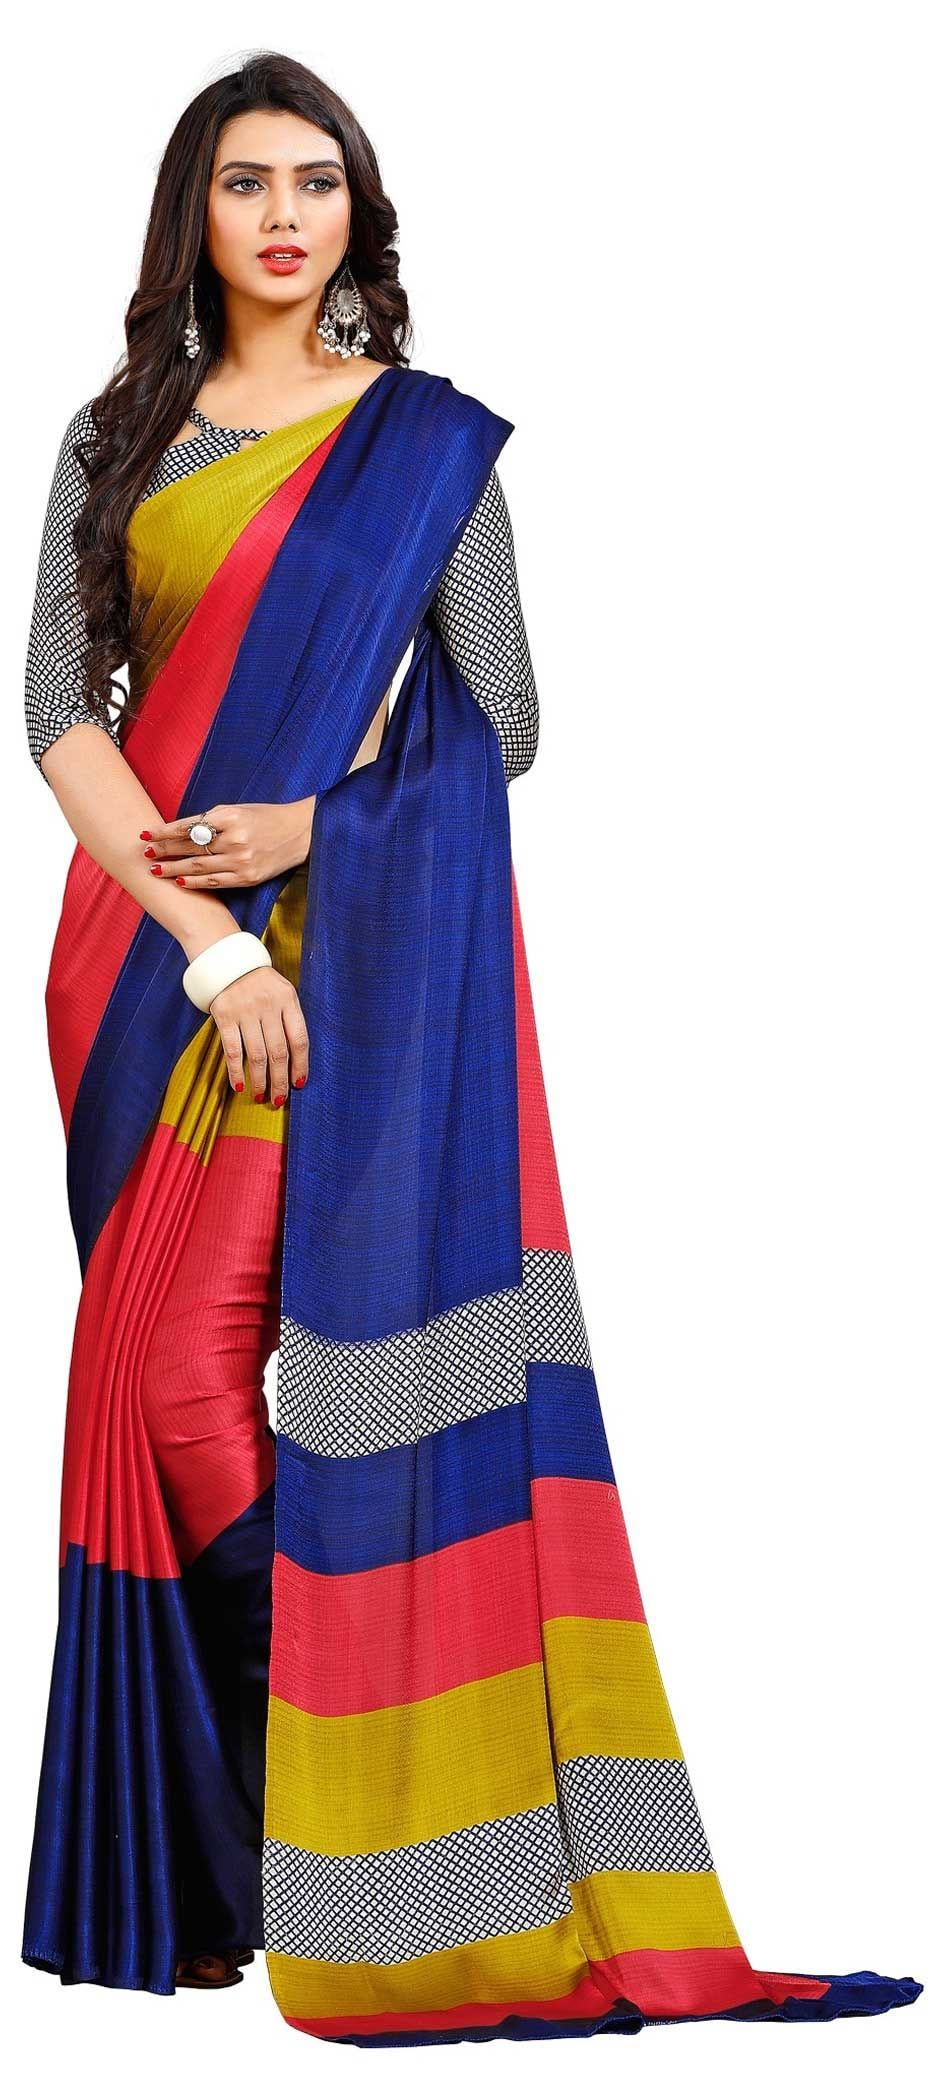 442b99319a3119 769670: Multicolor color family Printed Sarees, Silk Sarees with ...